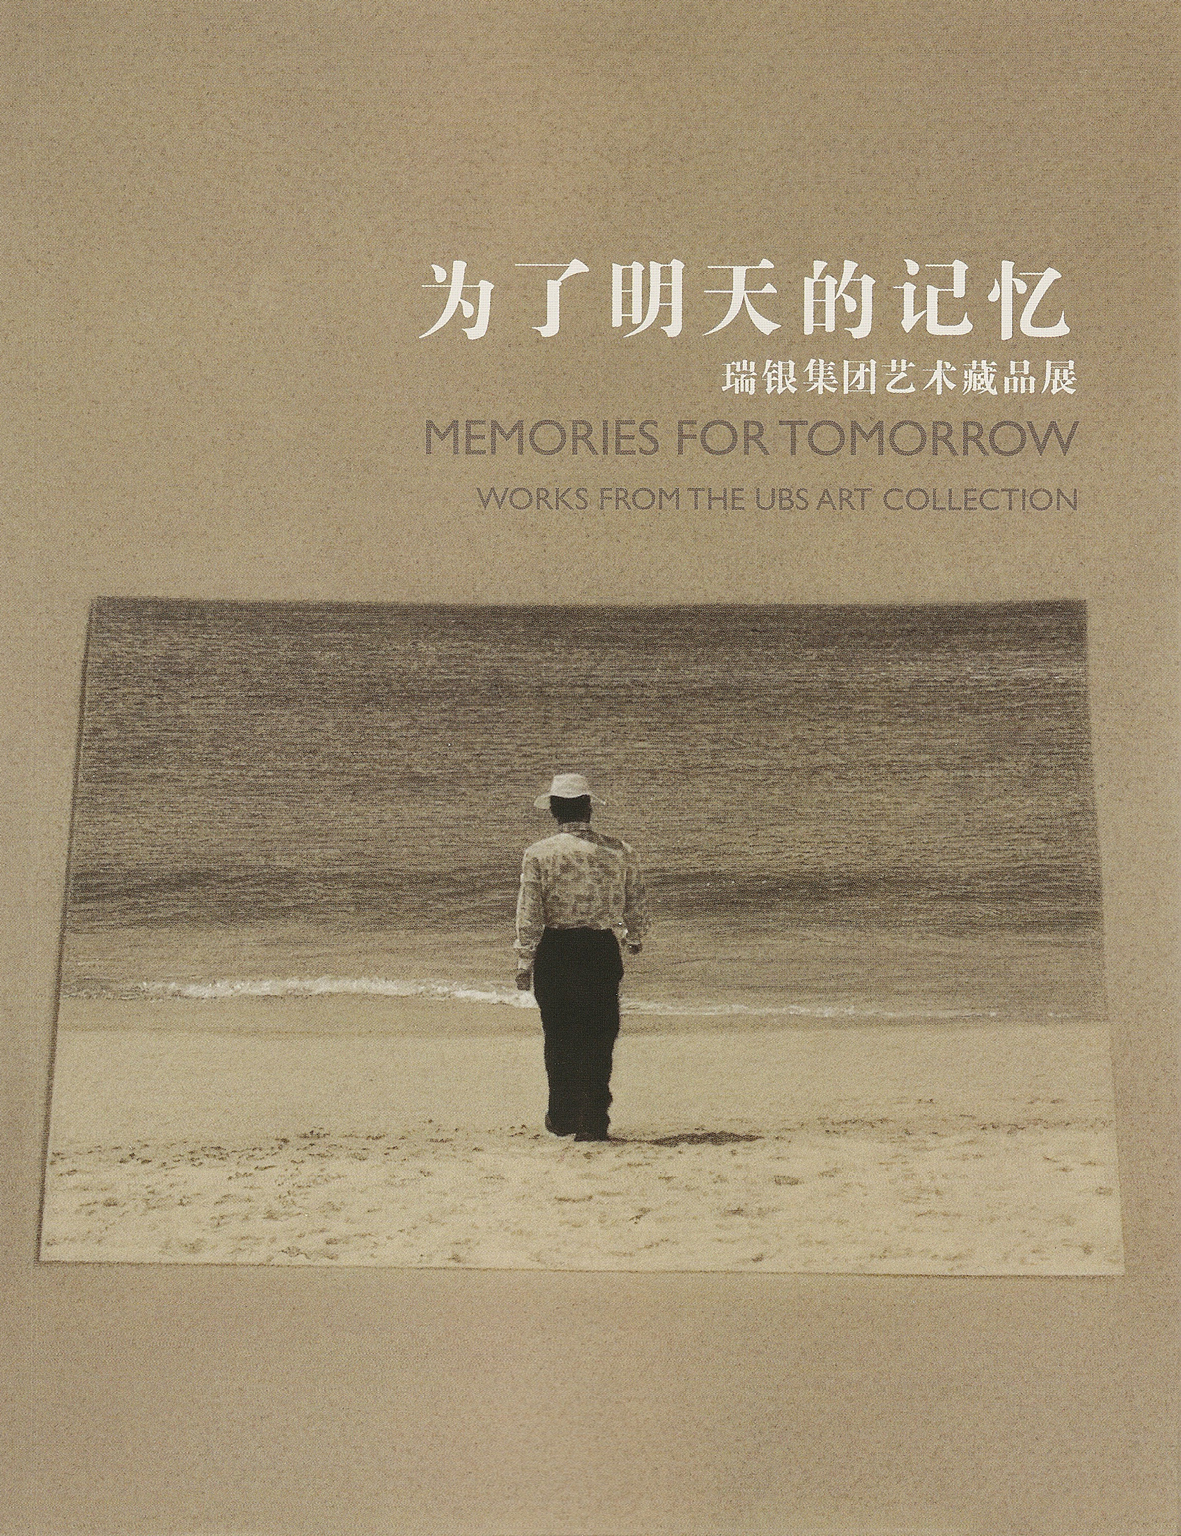 couv-memories-for-tomorrow.jpg